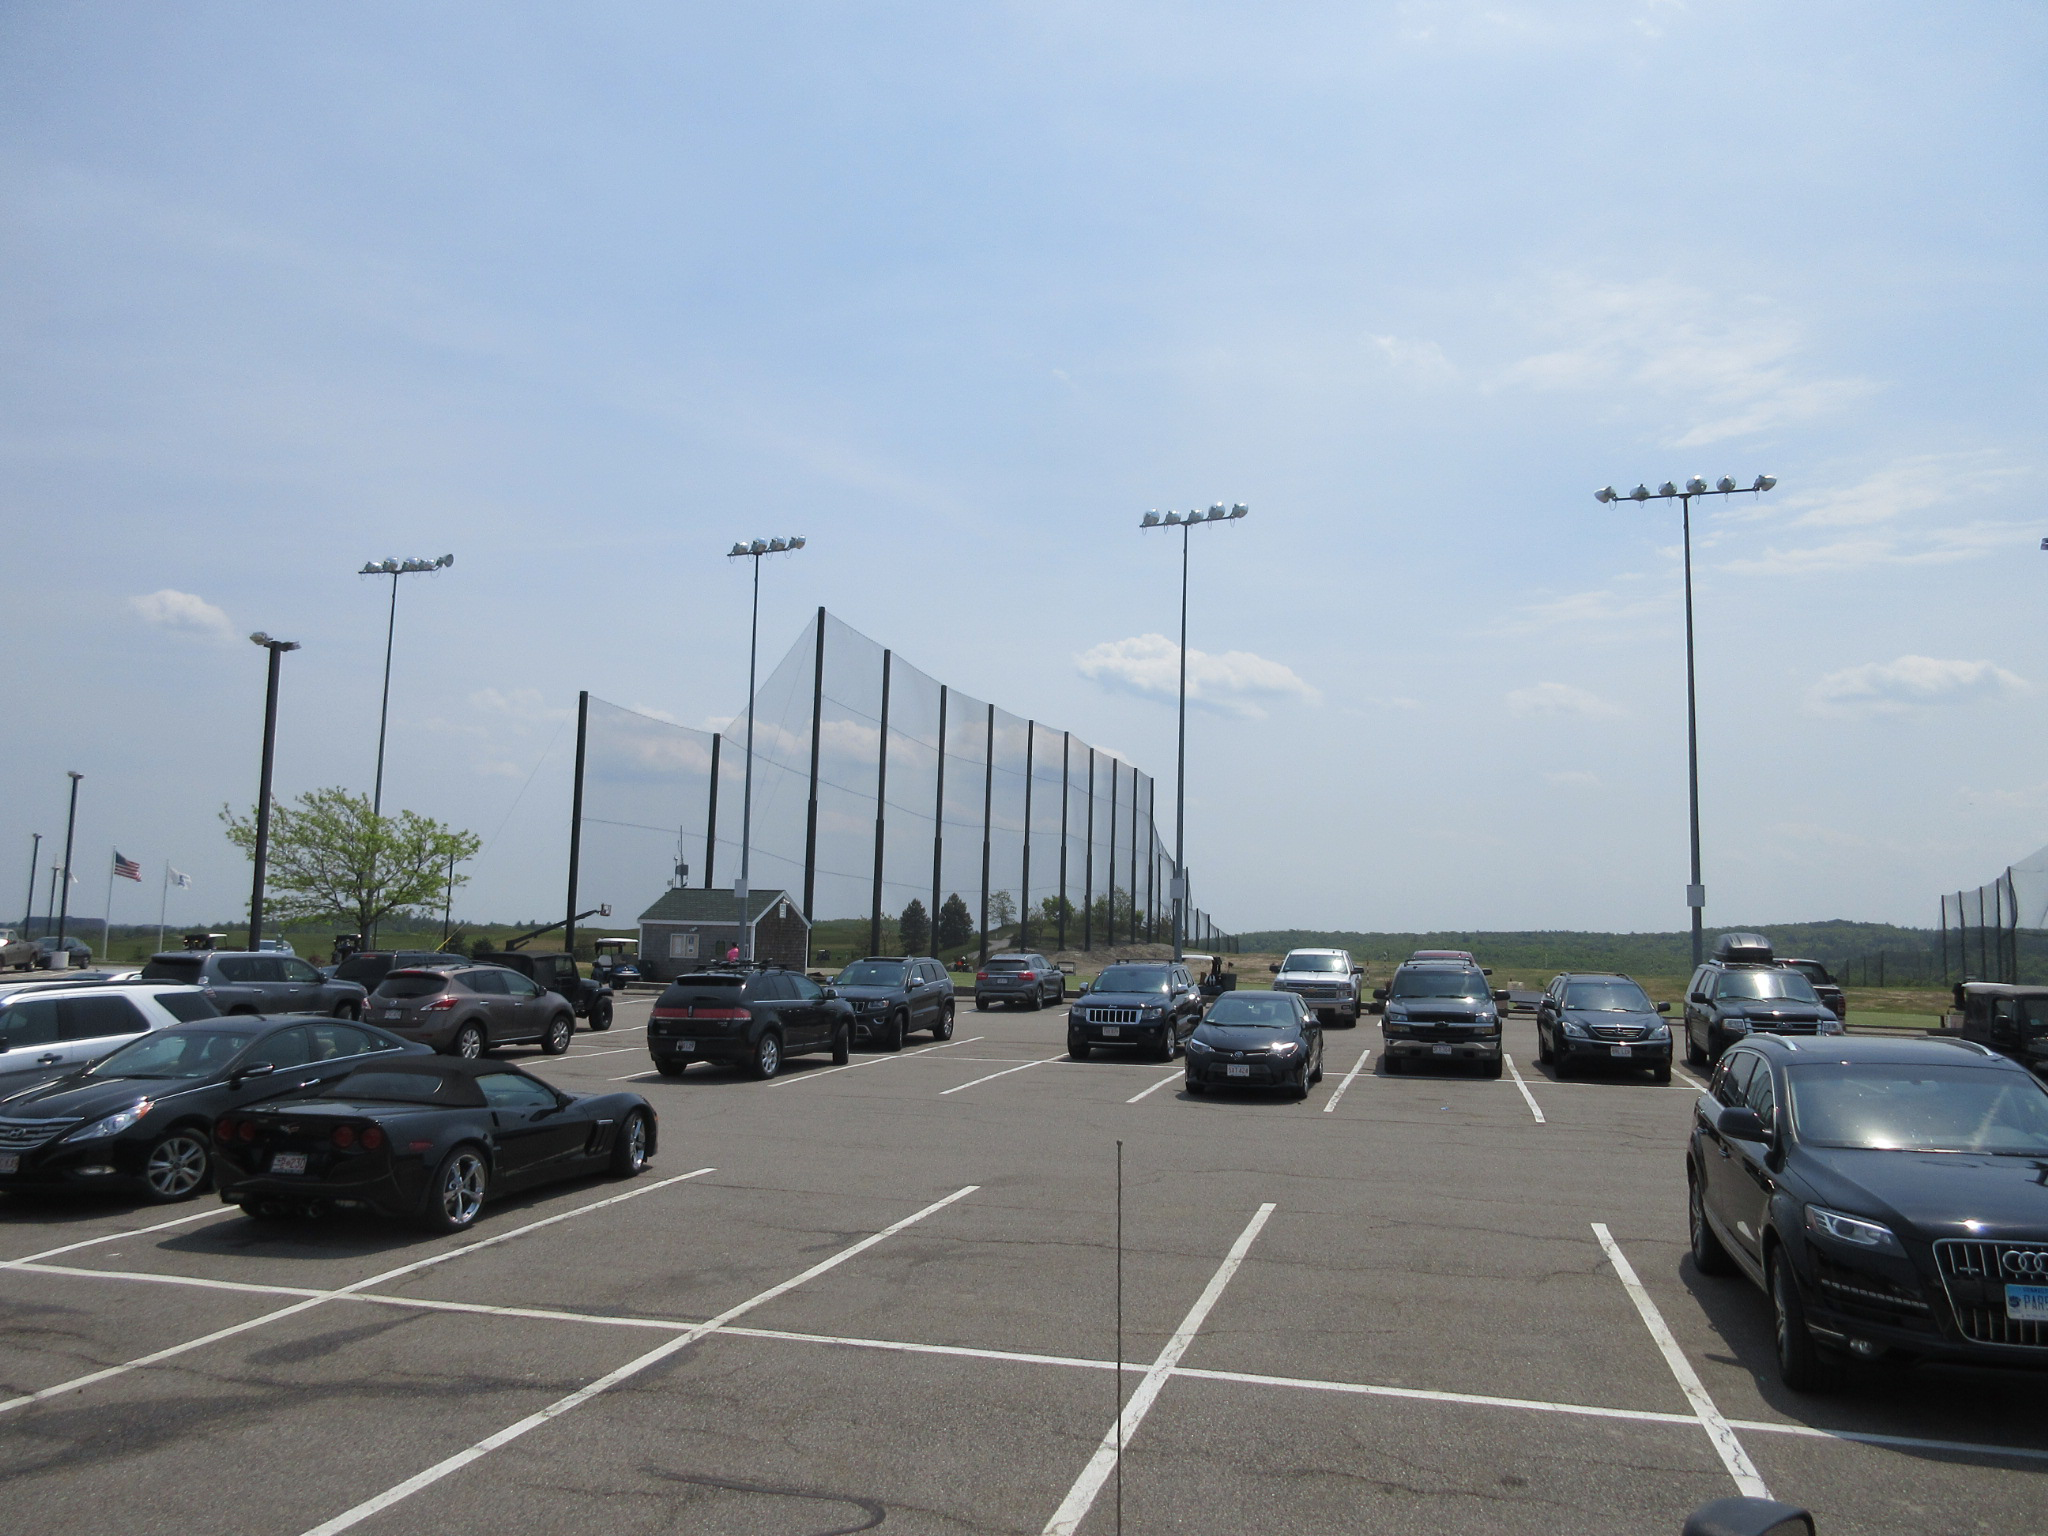 View of the Golf Netting from the parking lot